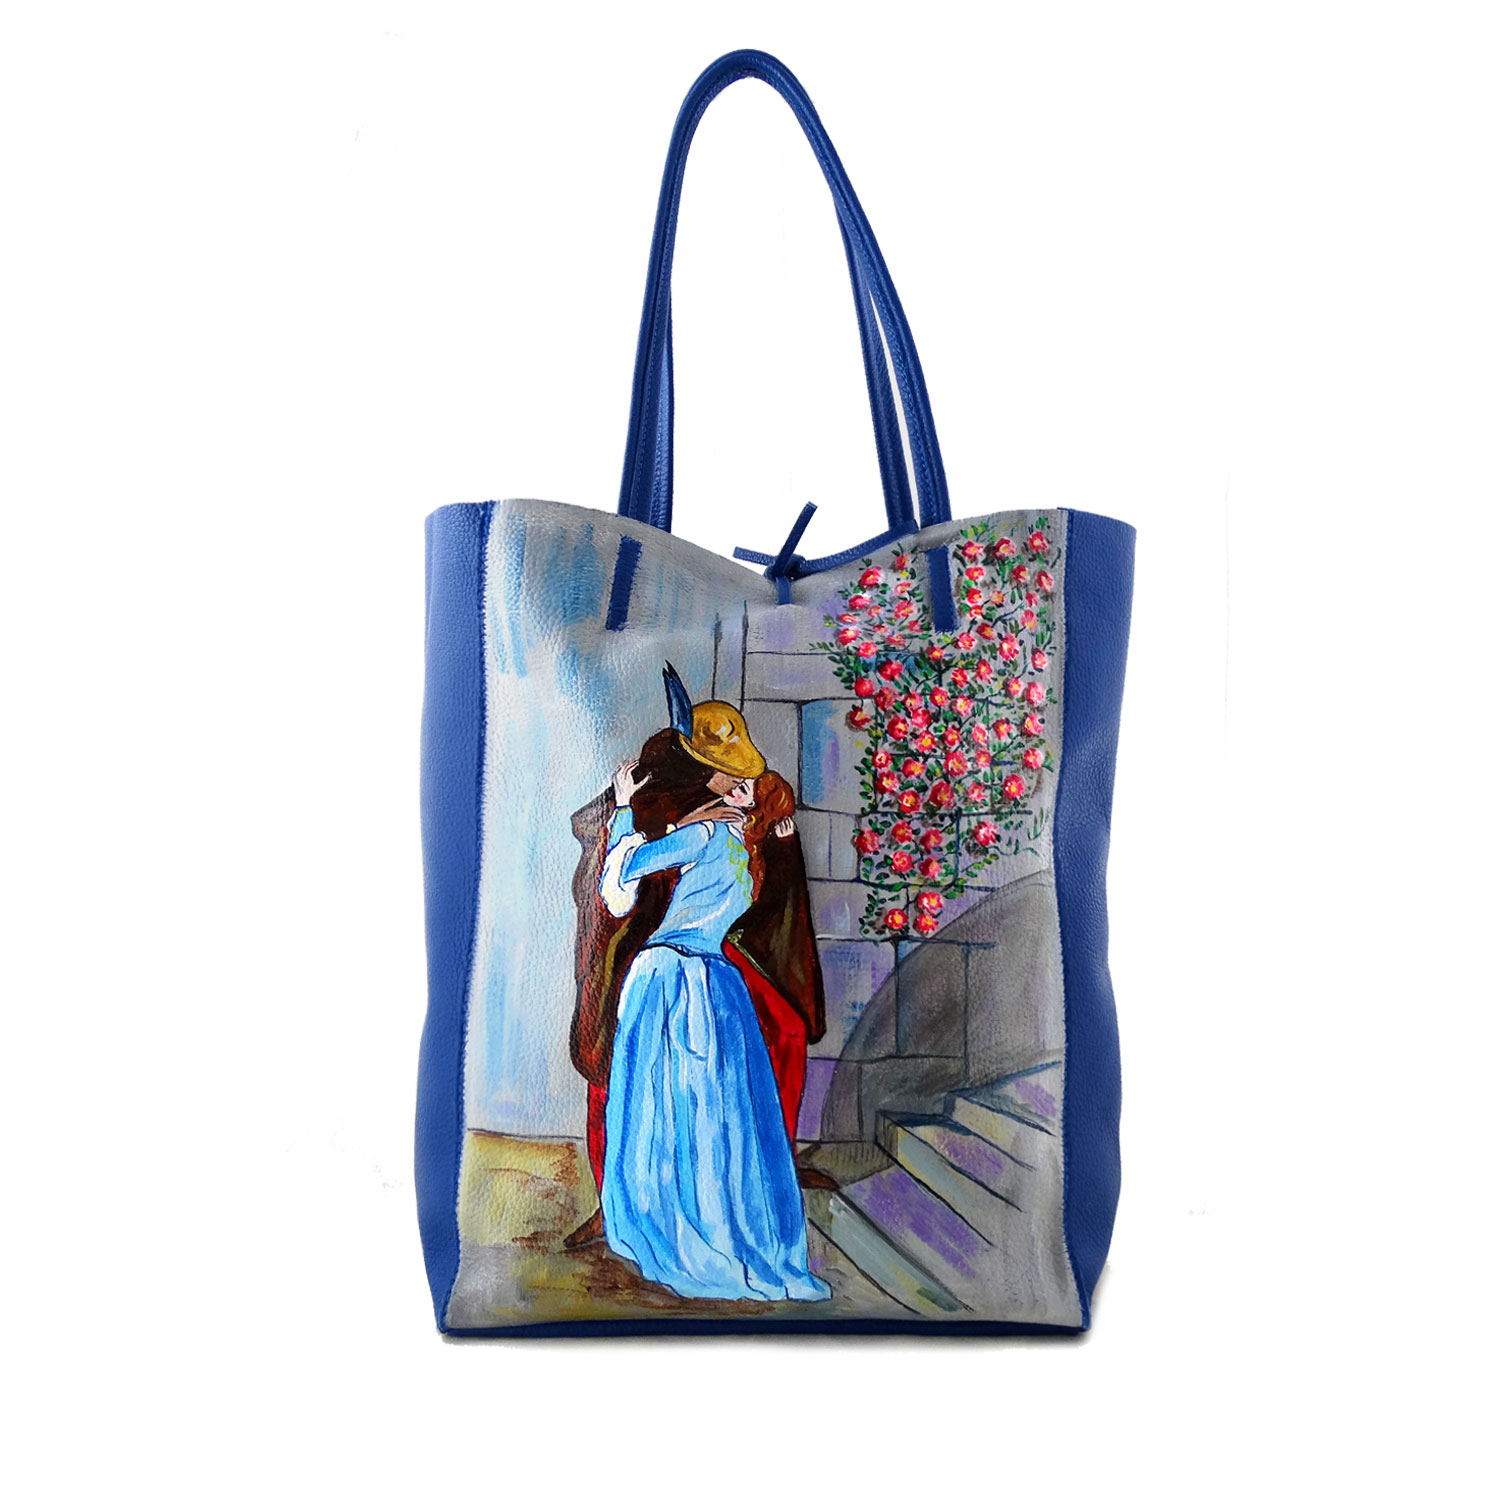 Hand painted bag - The Kiss by Hayez